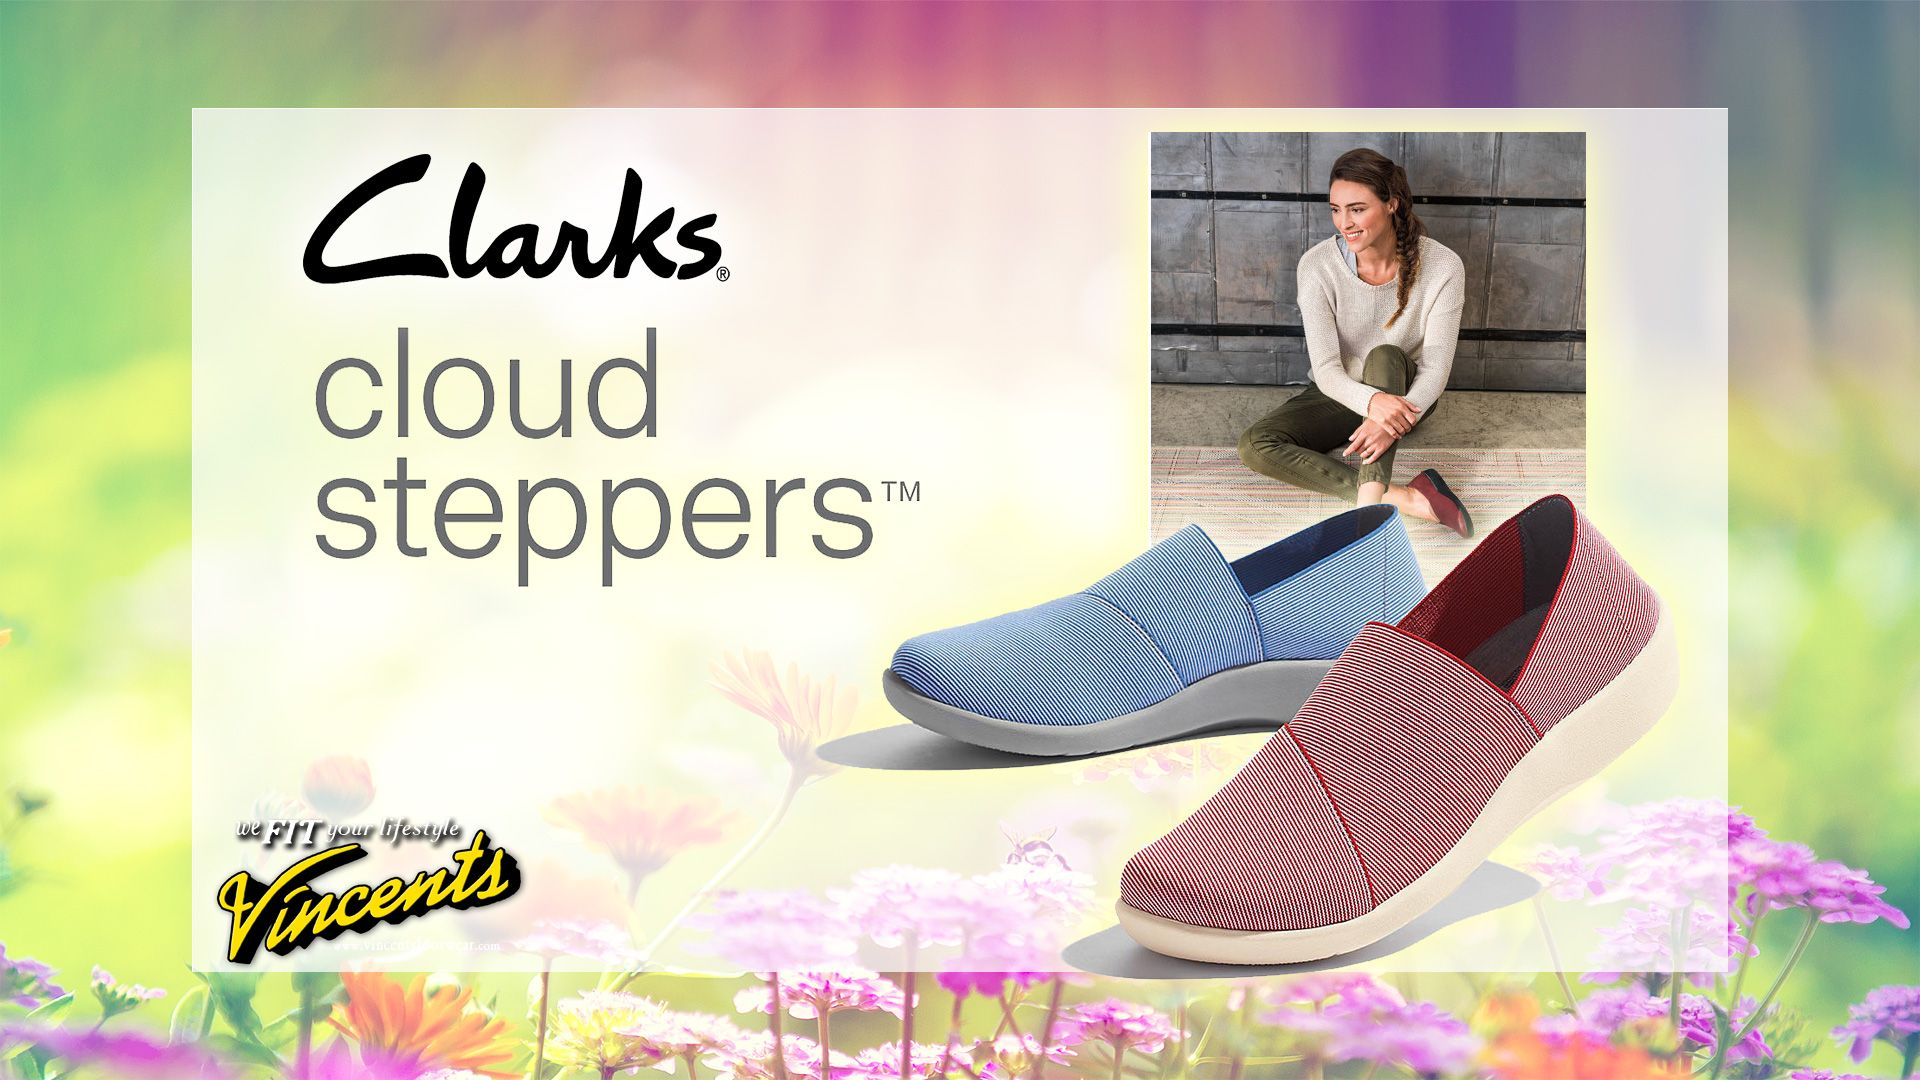 Yes, Clark Cloud Steppers are like